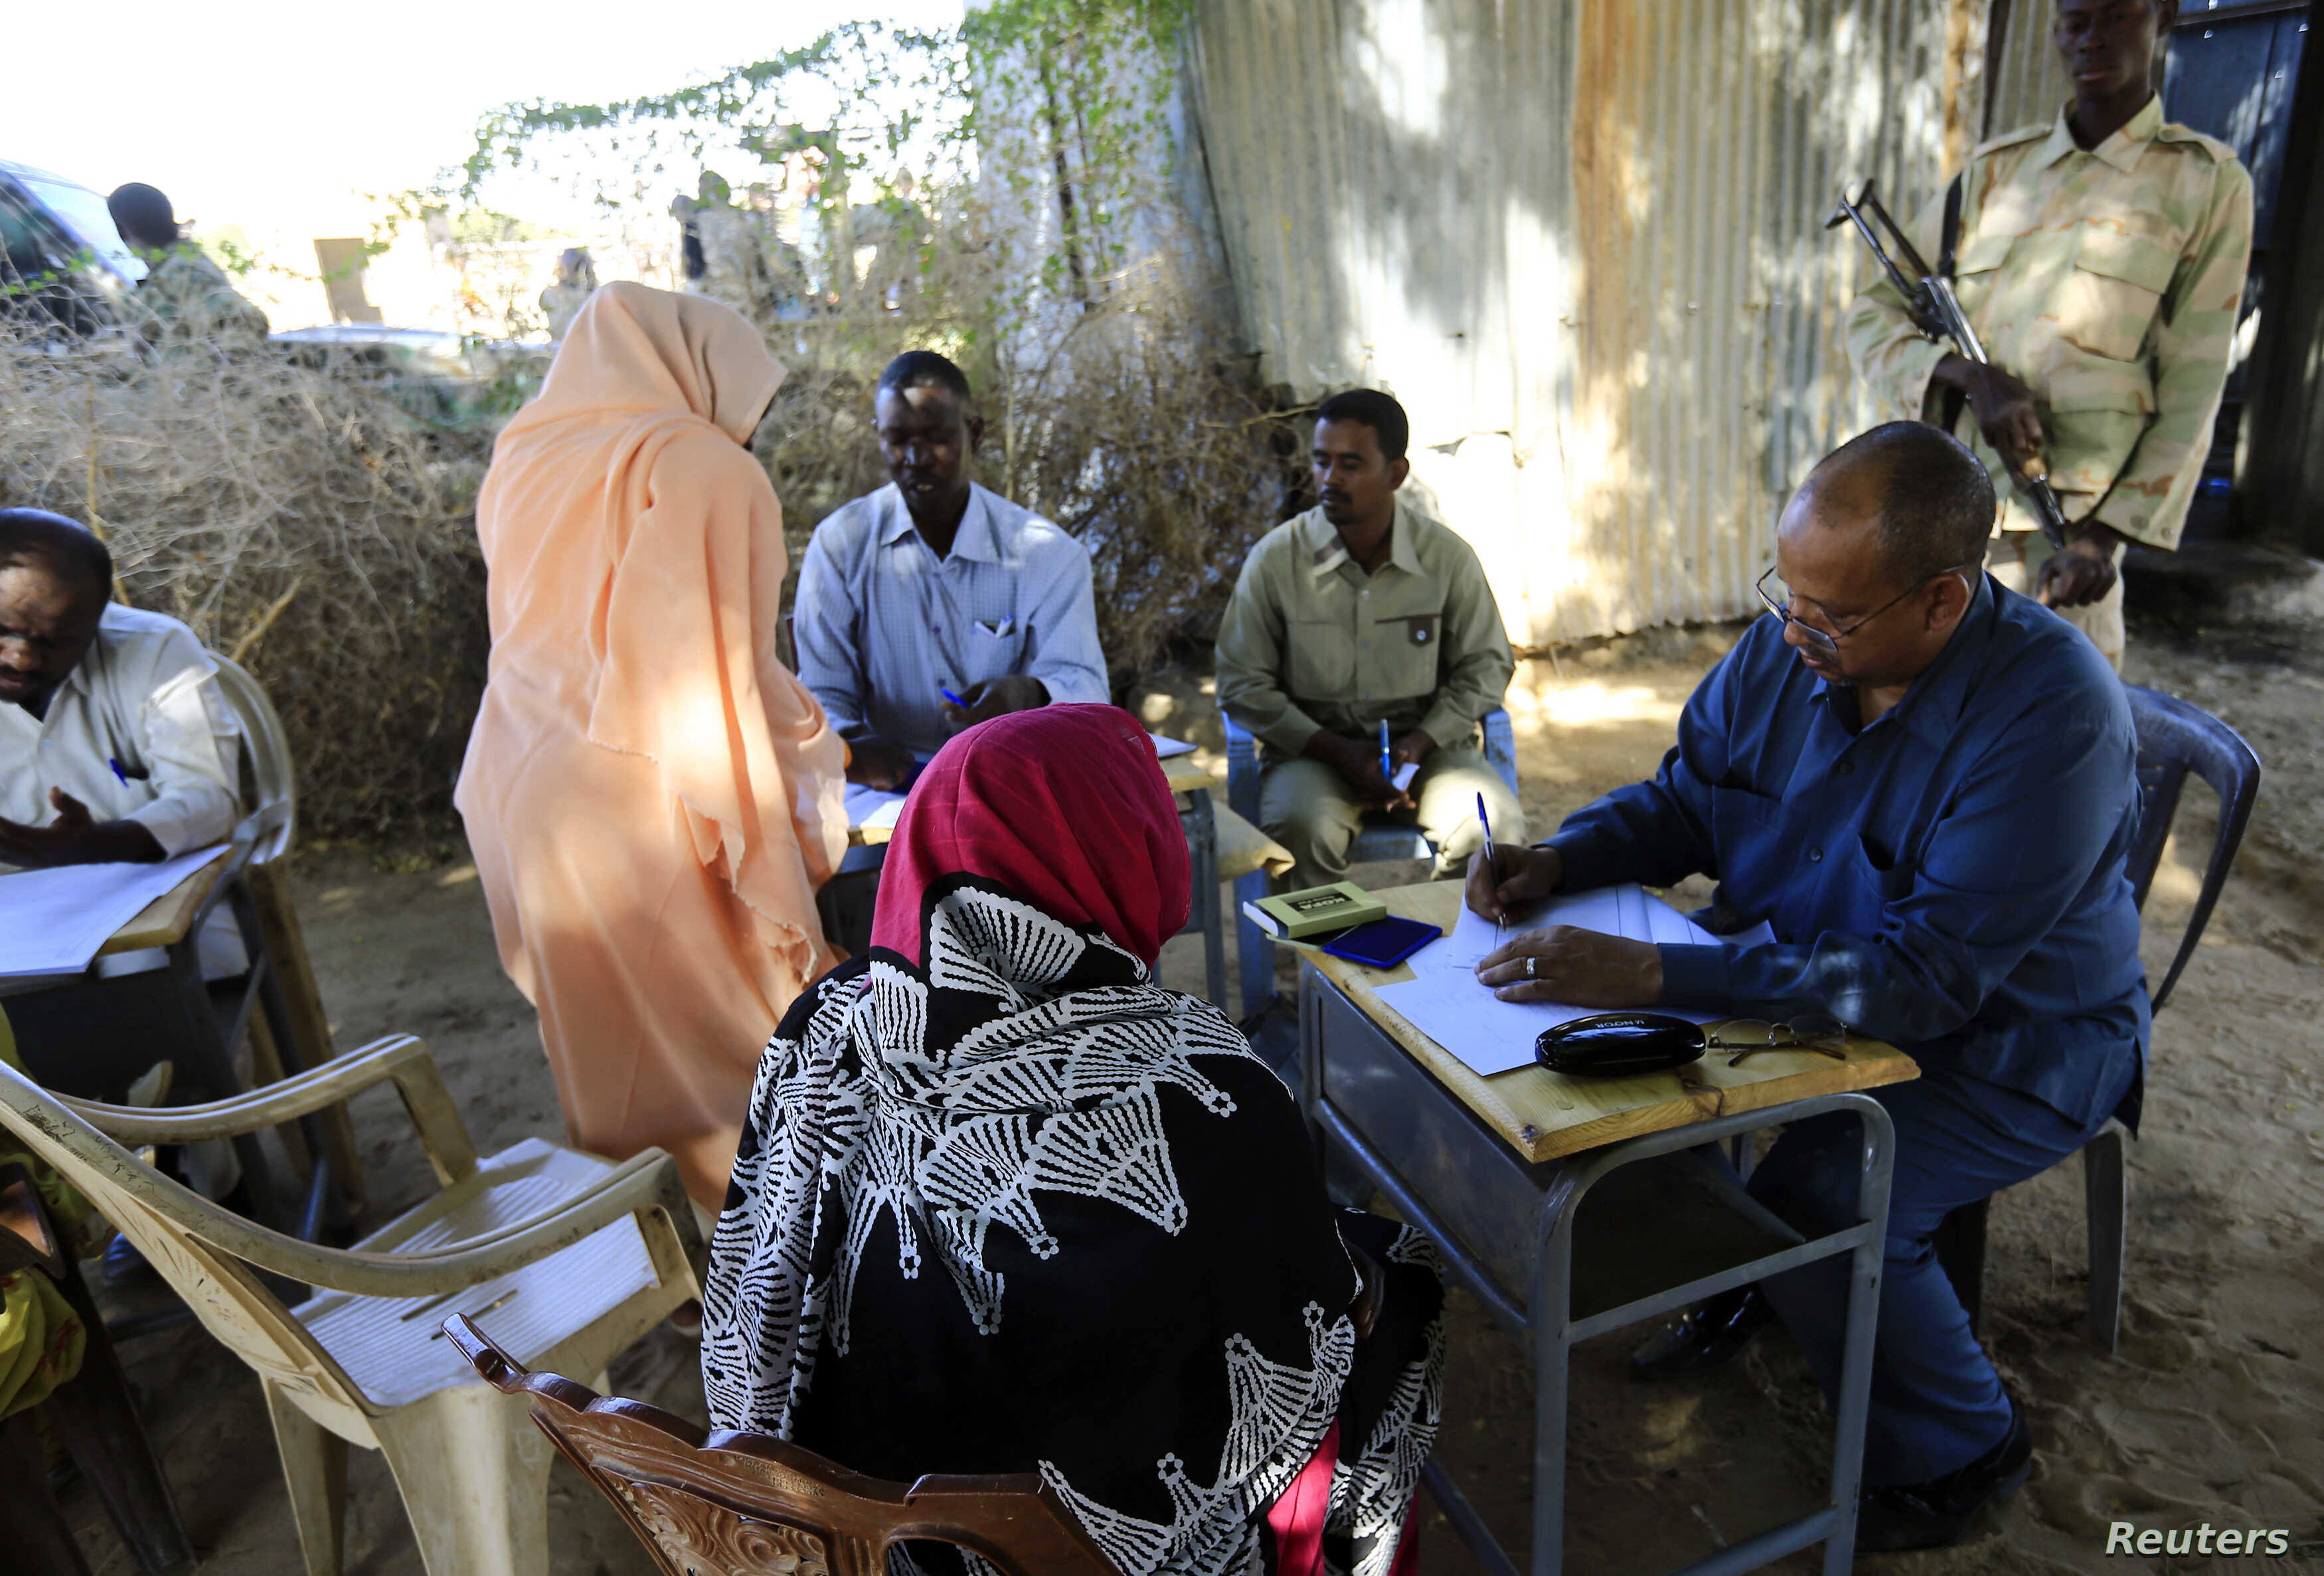 FILE - Yasir Ahmed Mohamed, seated at right, special prosecutor for crimes in Darfur, and his team talk to women during an investigation into allegations of mass rape in Thabit, North Darfur, Nov. 20, 2014.